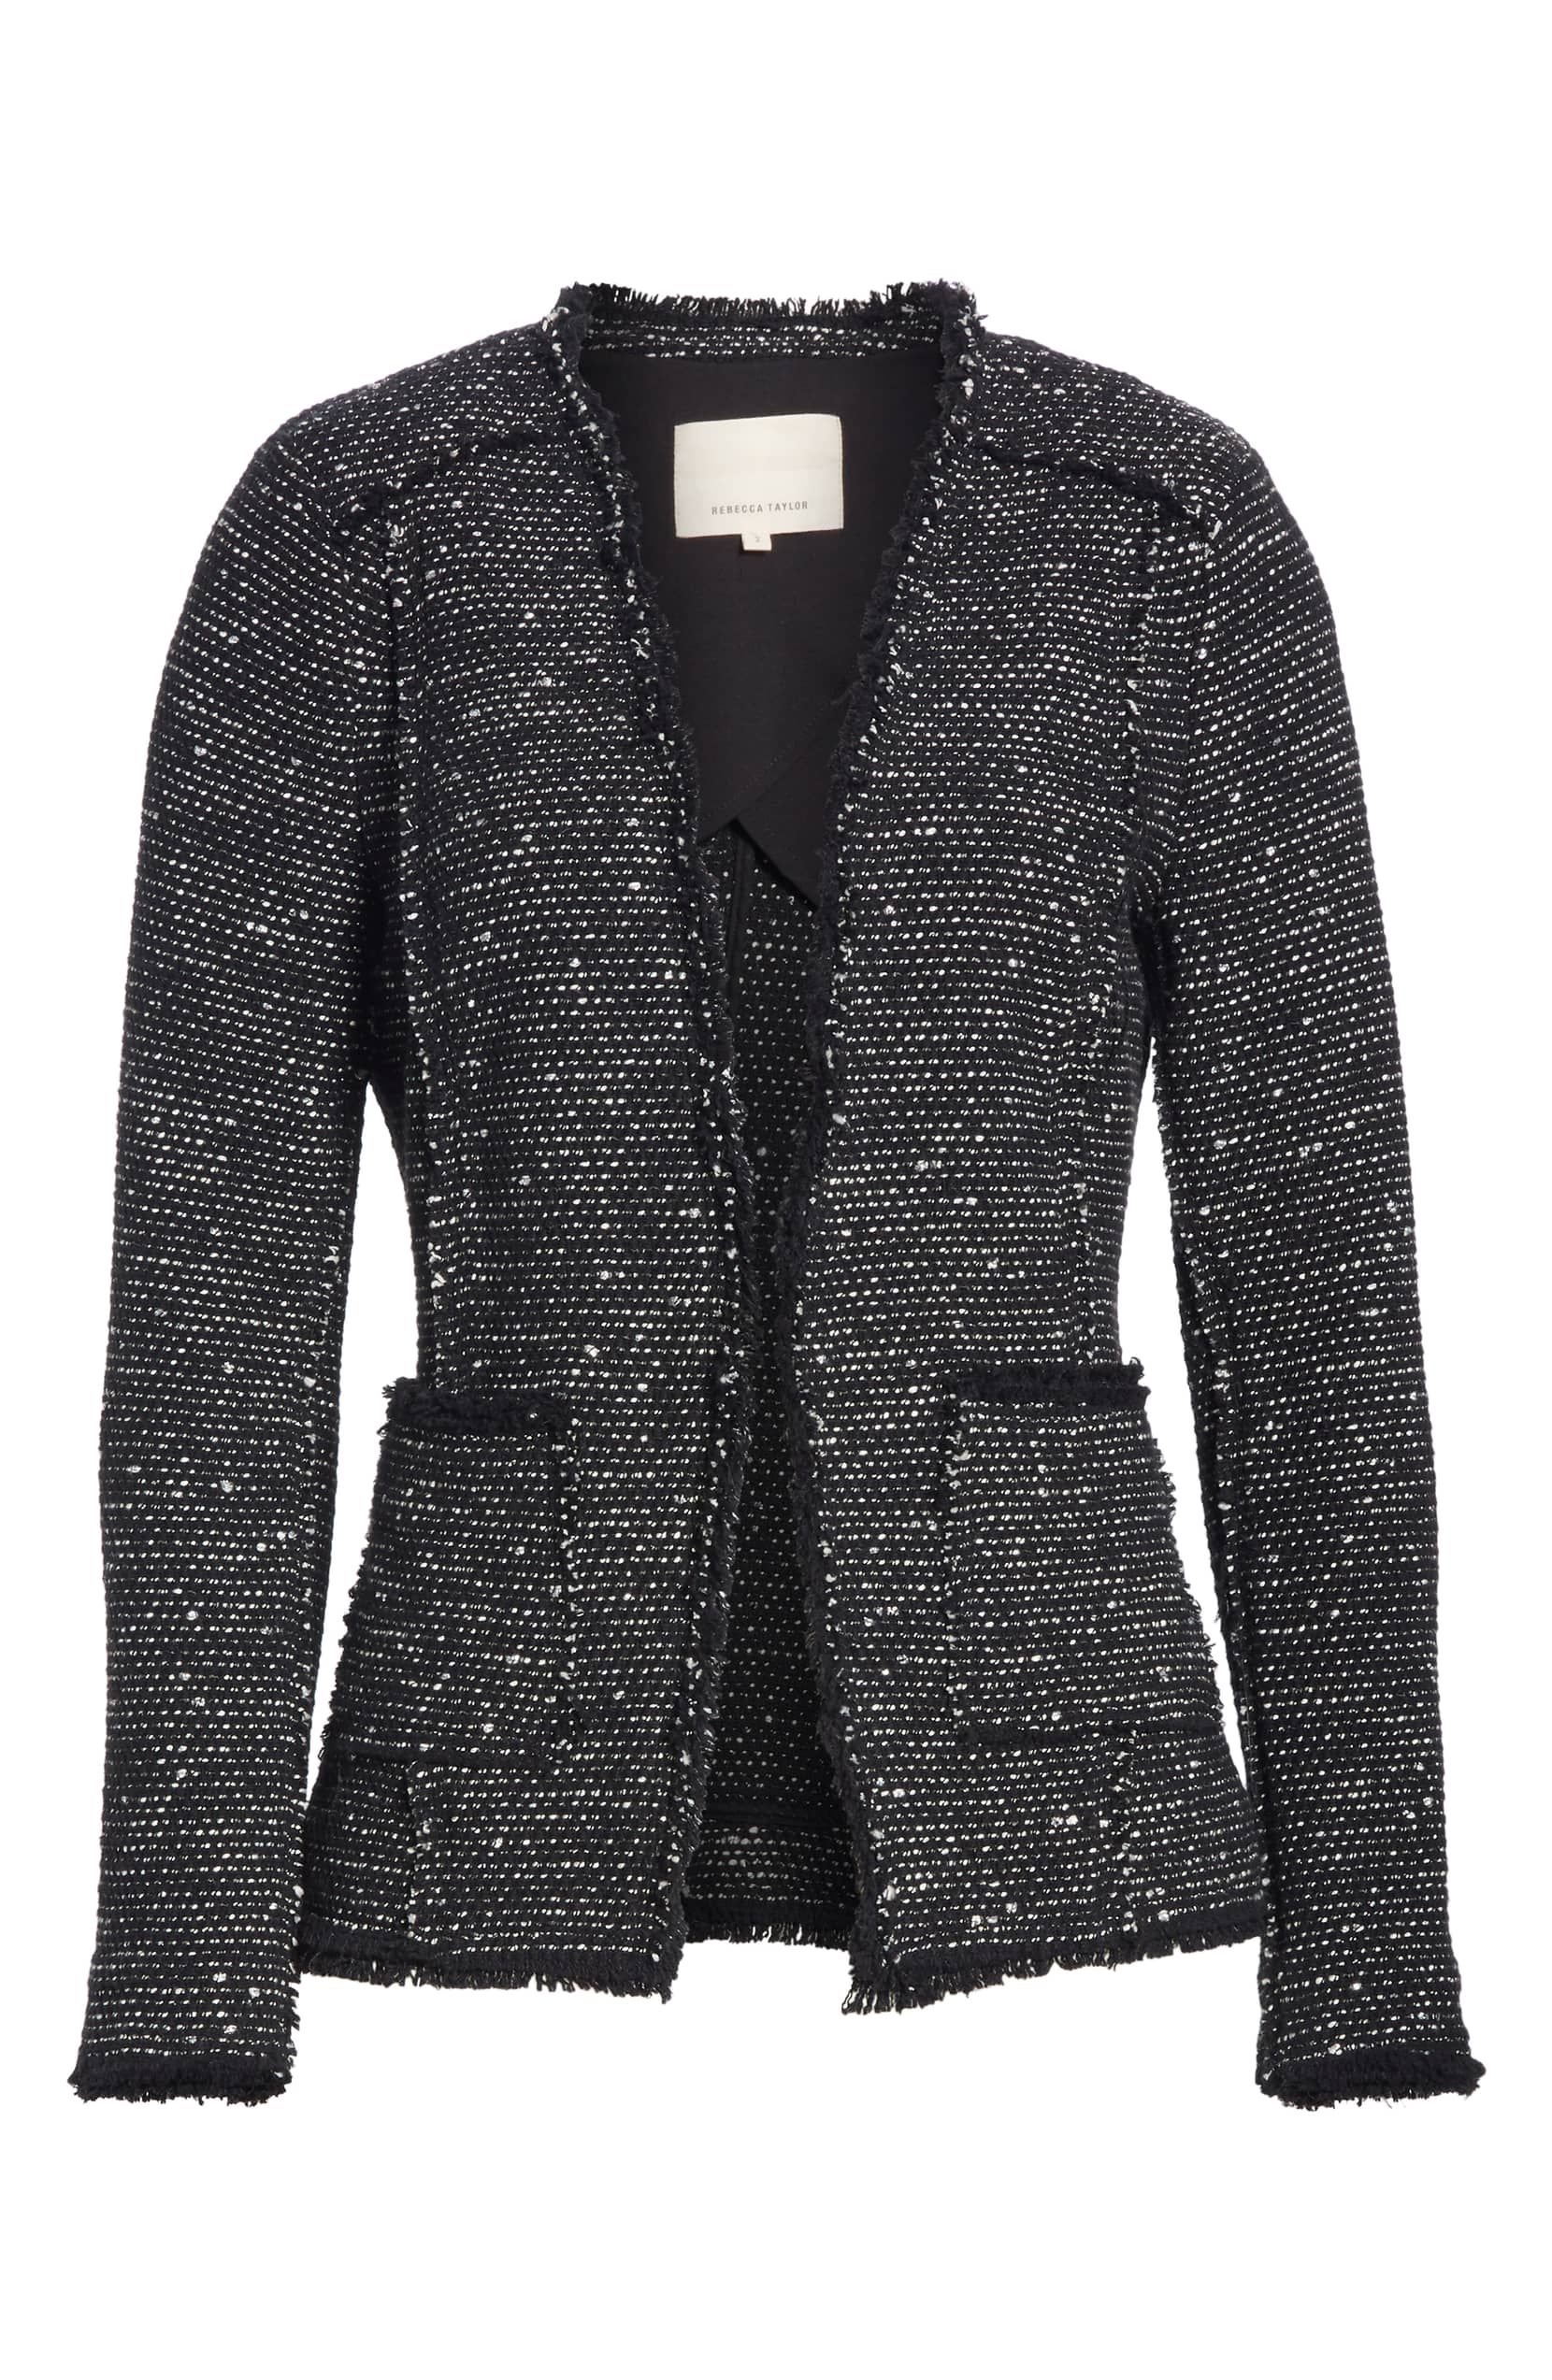 Black Sparkle Stretch Tweed Jacket Rebecca Taylor